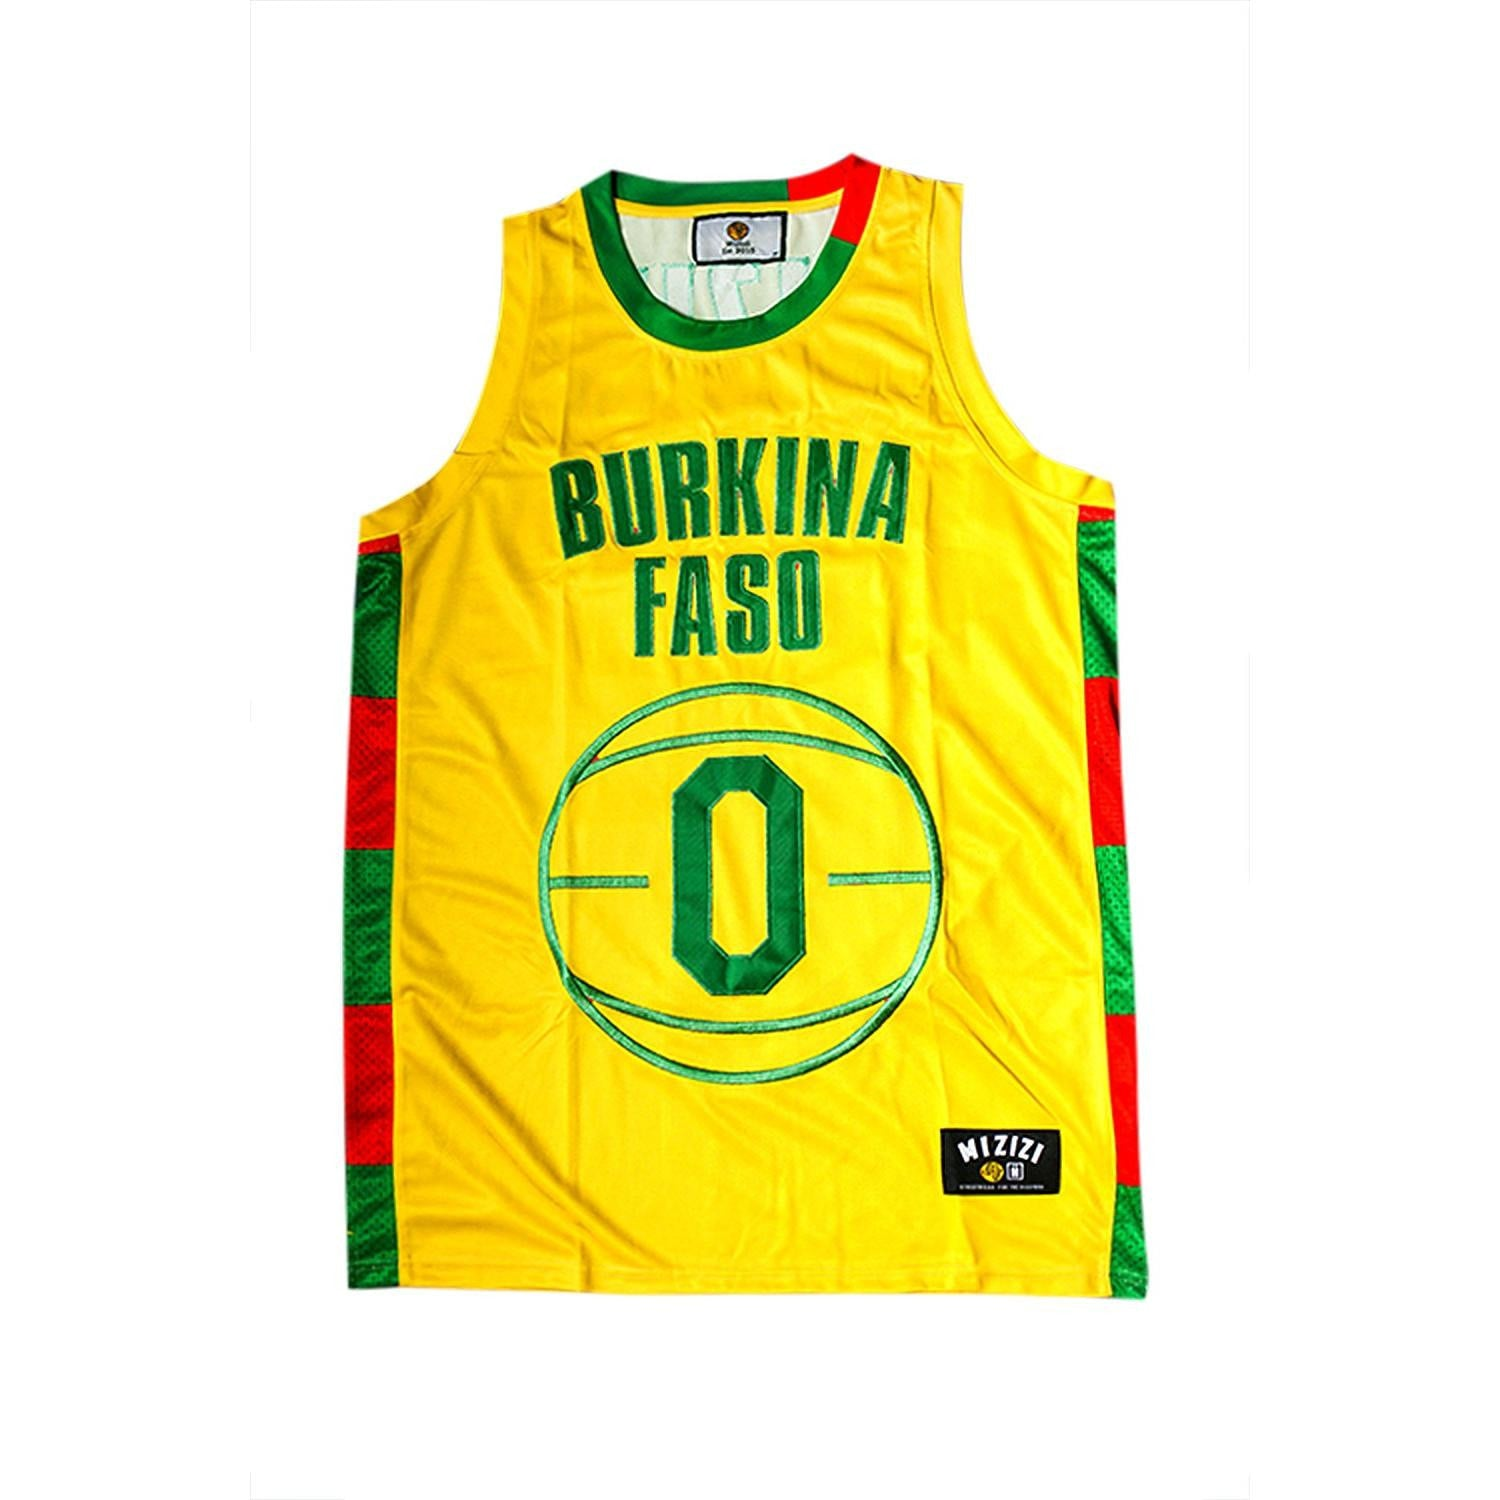 Burkina Faso Basketball Jersey